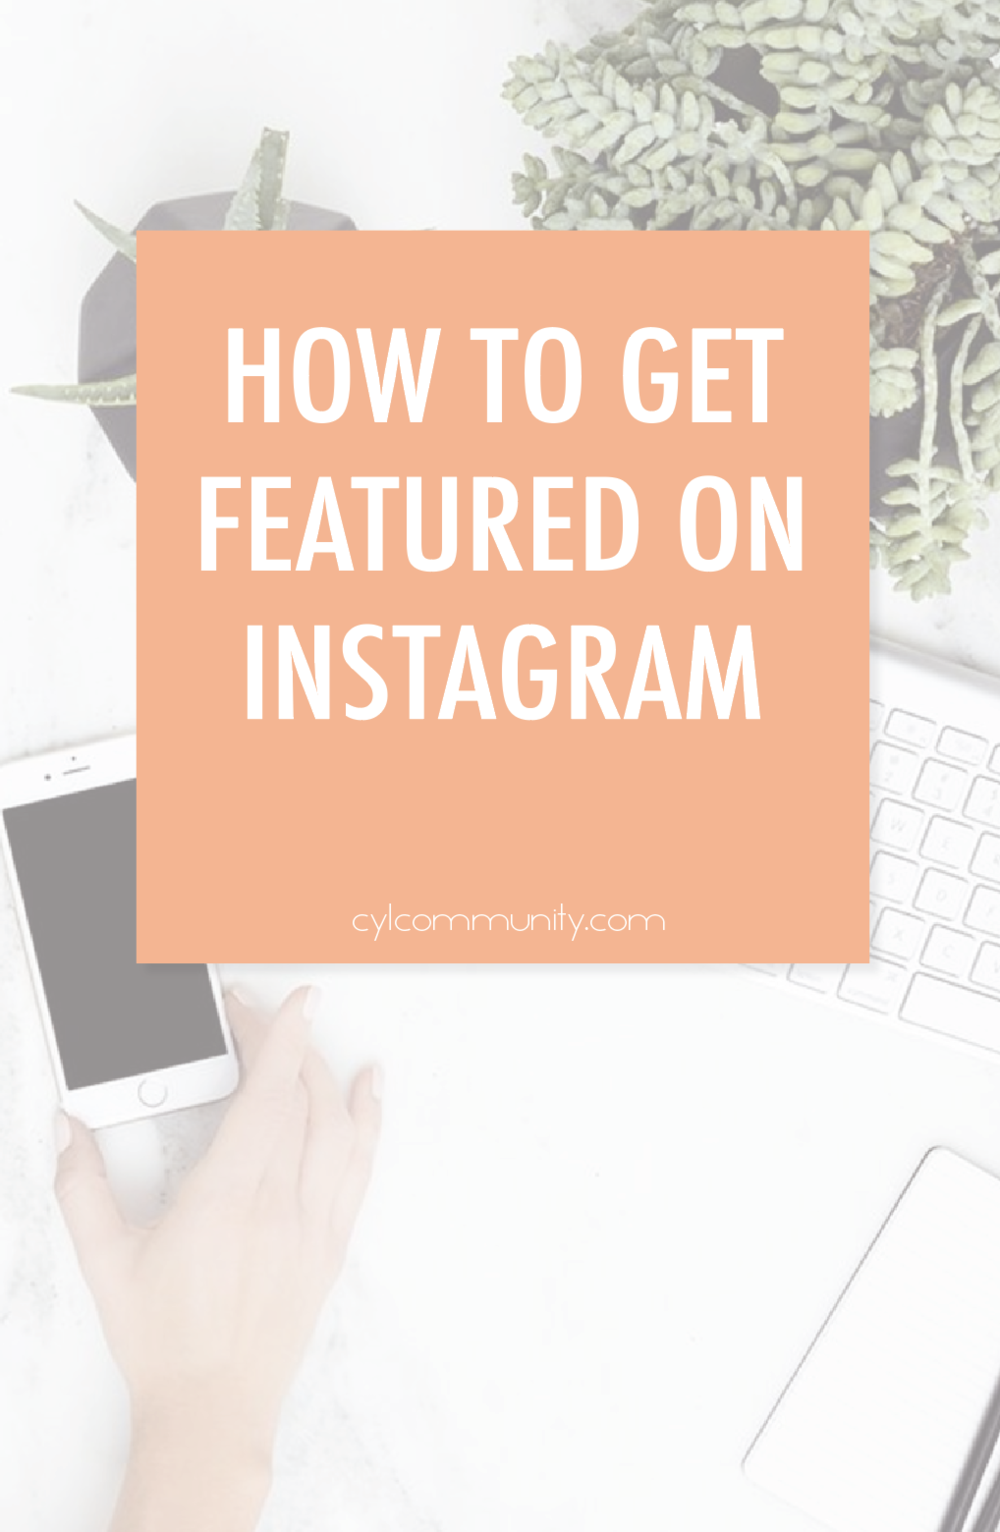 entrepreneur_how_to_get_featured_on_instagram.png